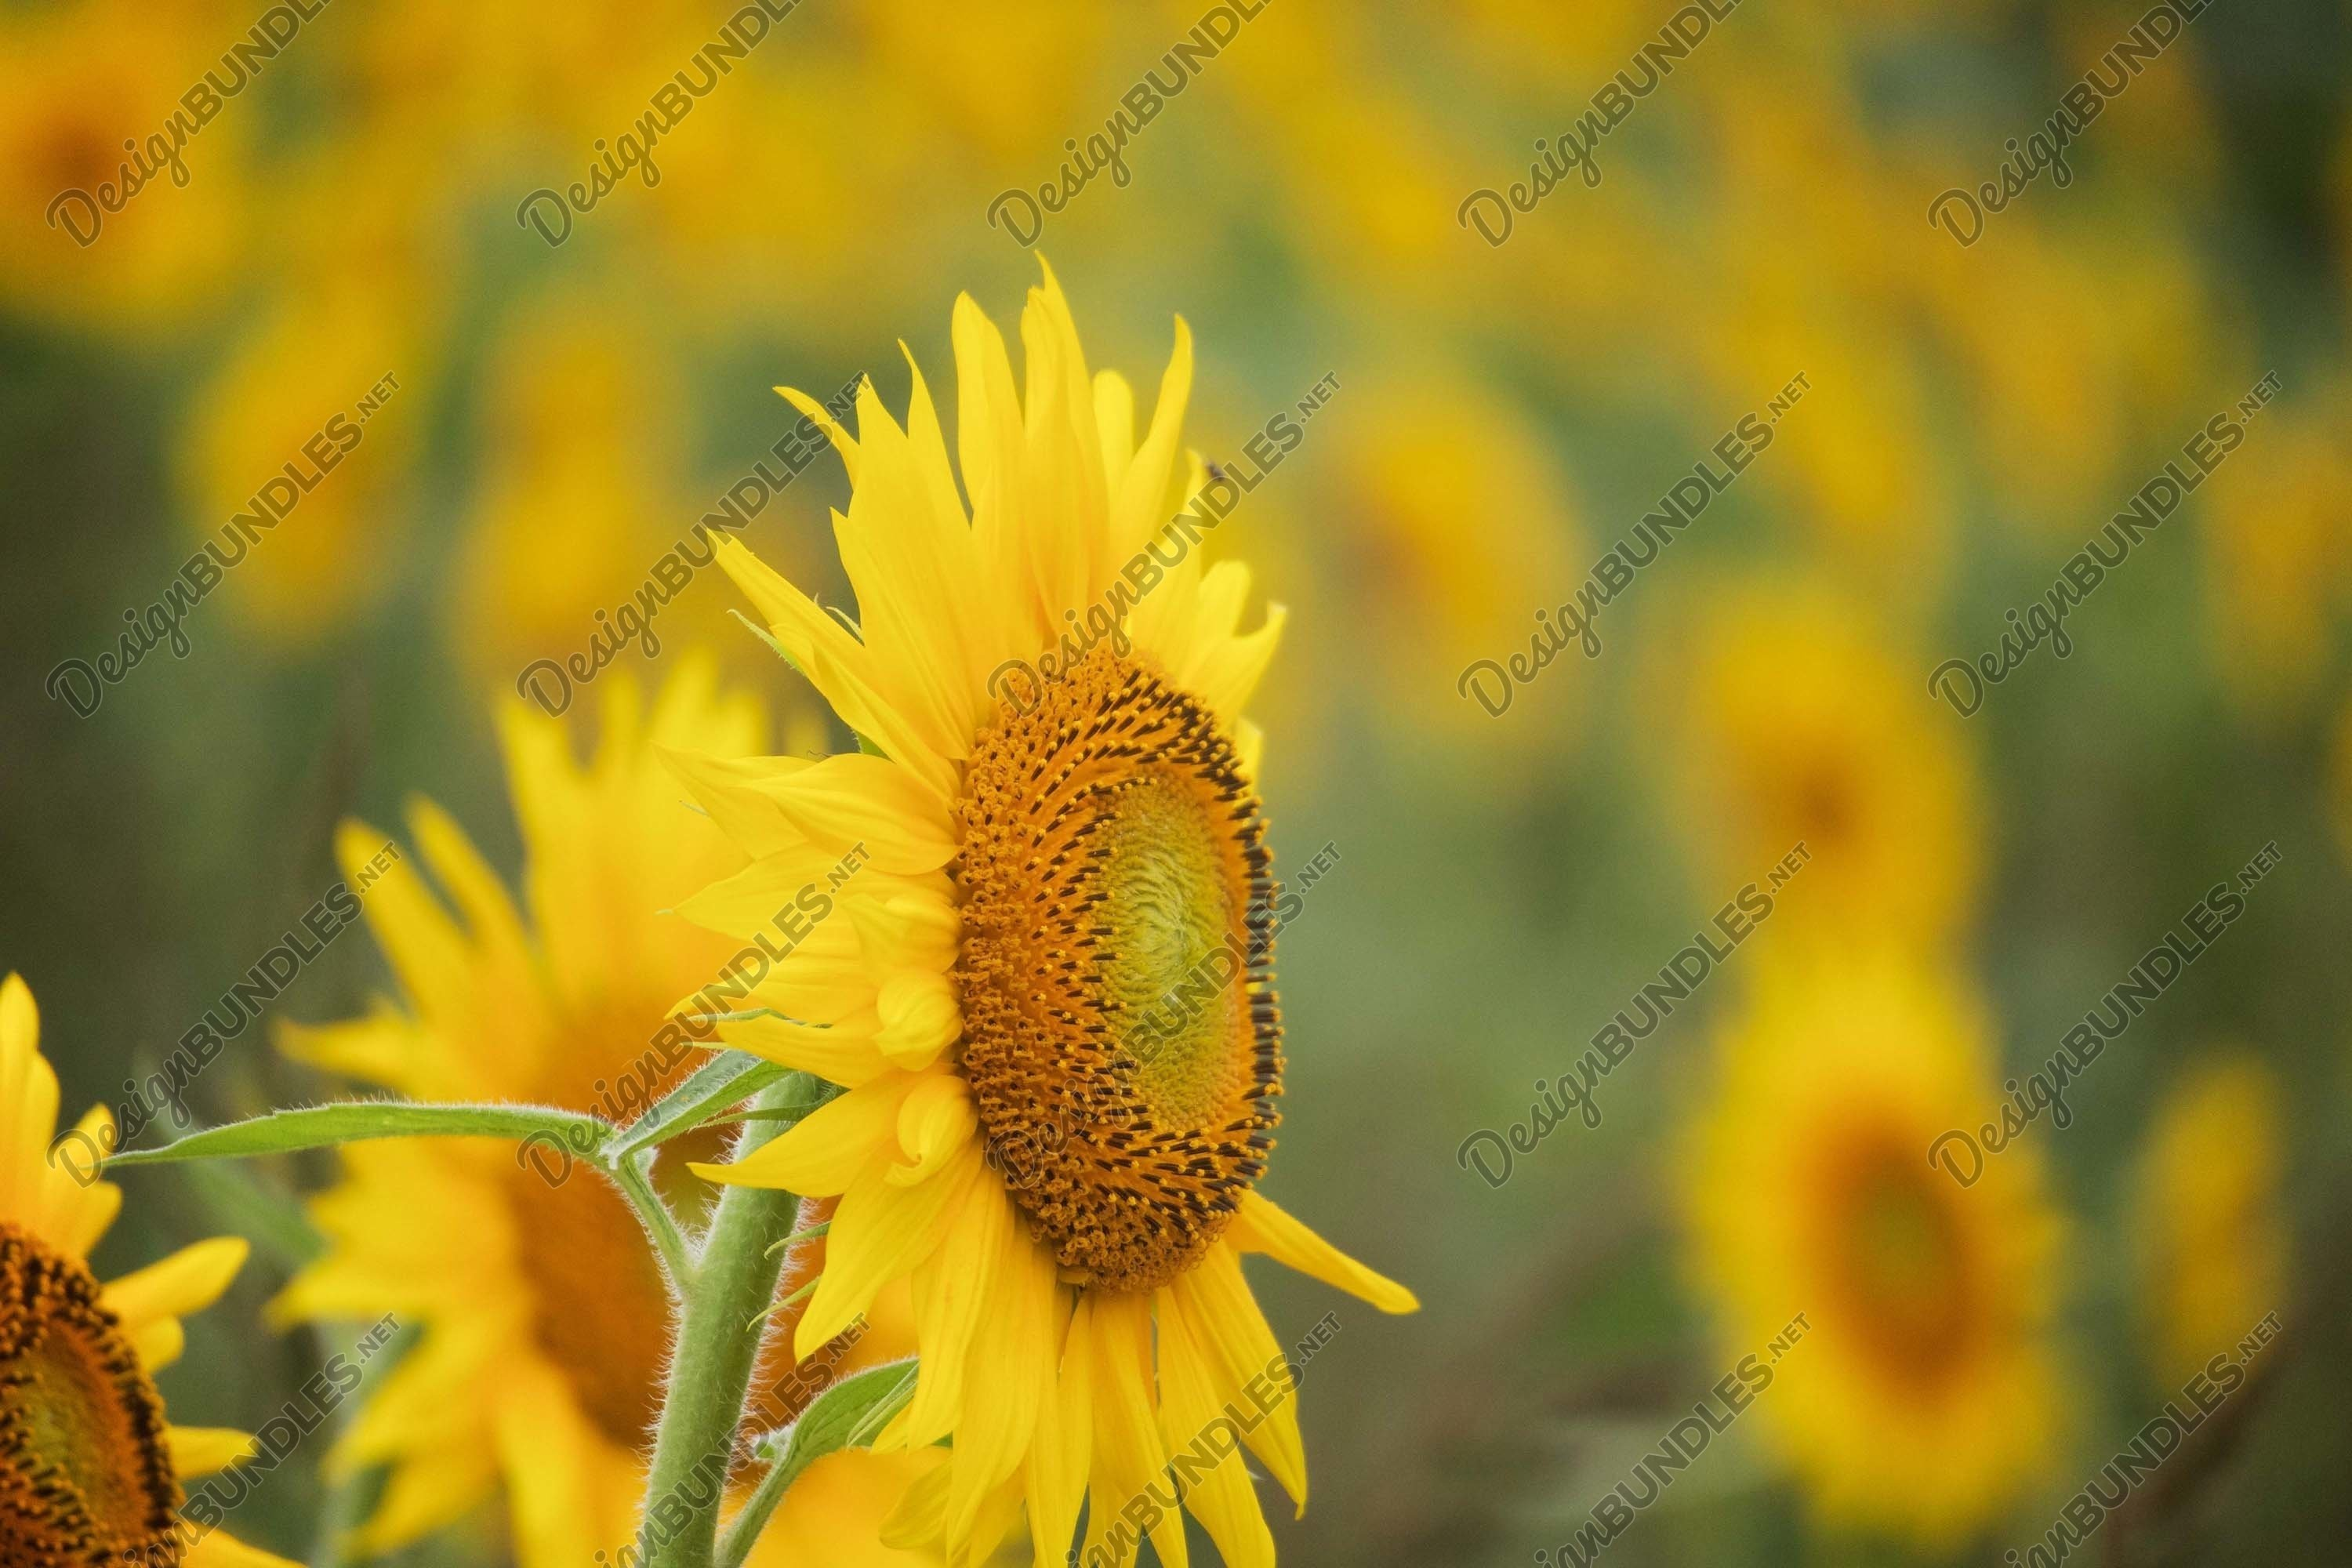 Stock Photo - Selective focus on sunflower in foreground example image 1